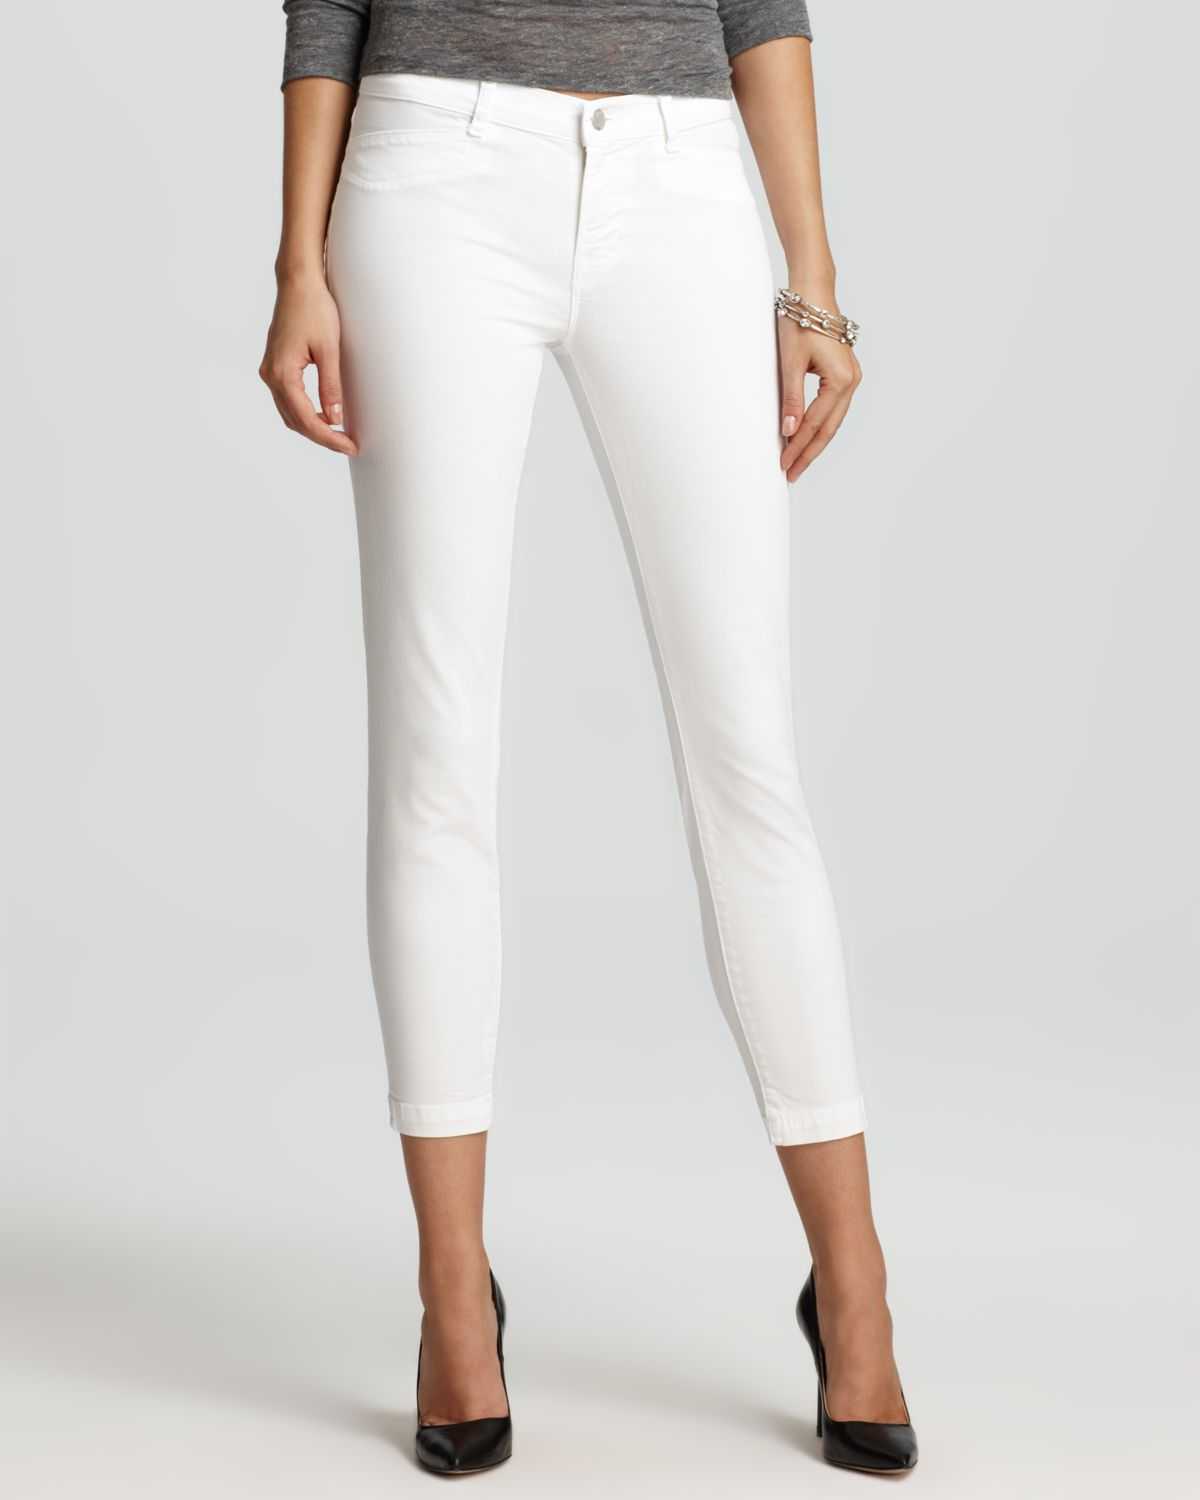 White Jean Capri Pants | Pant So